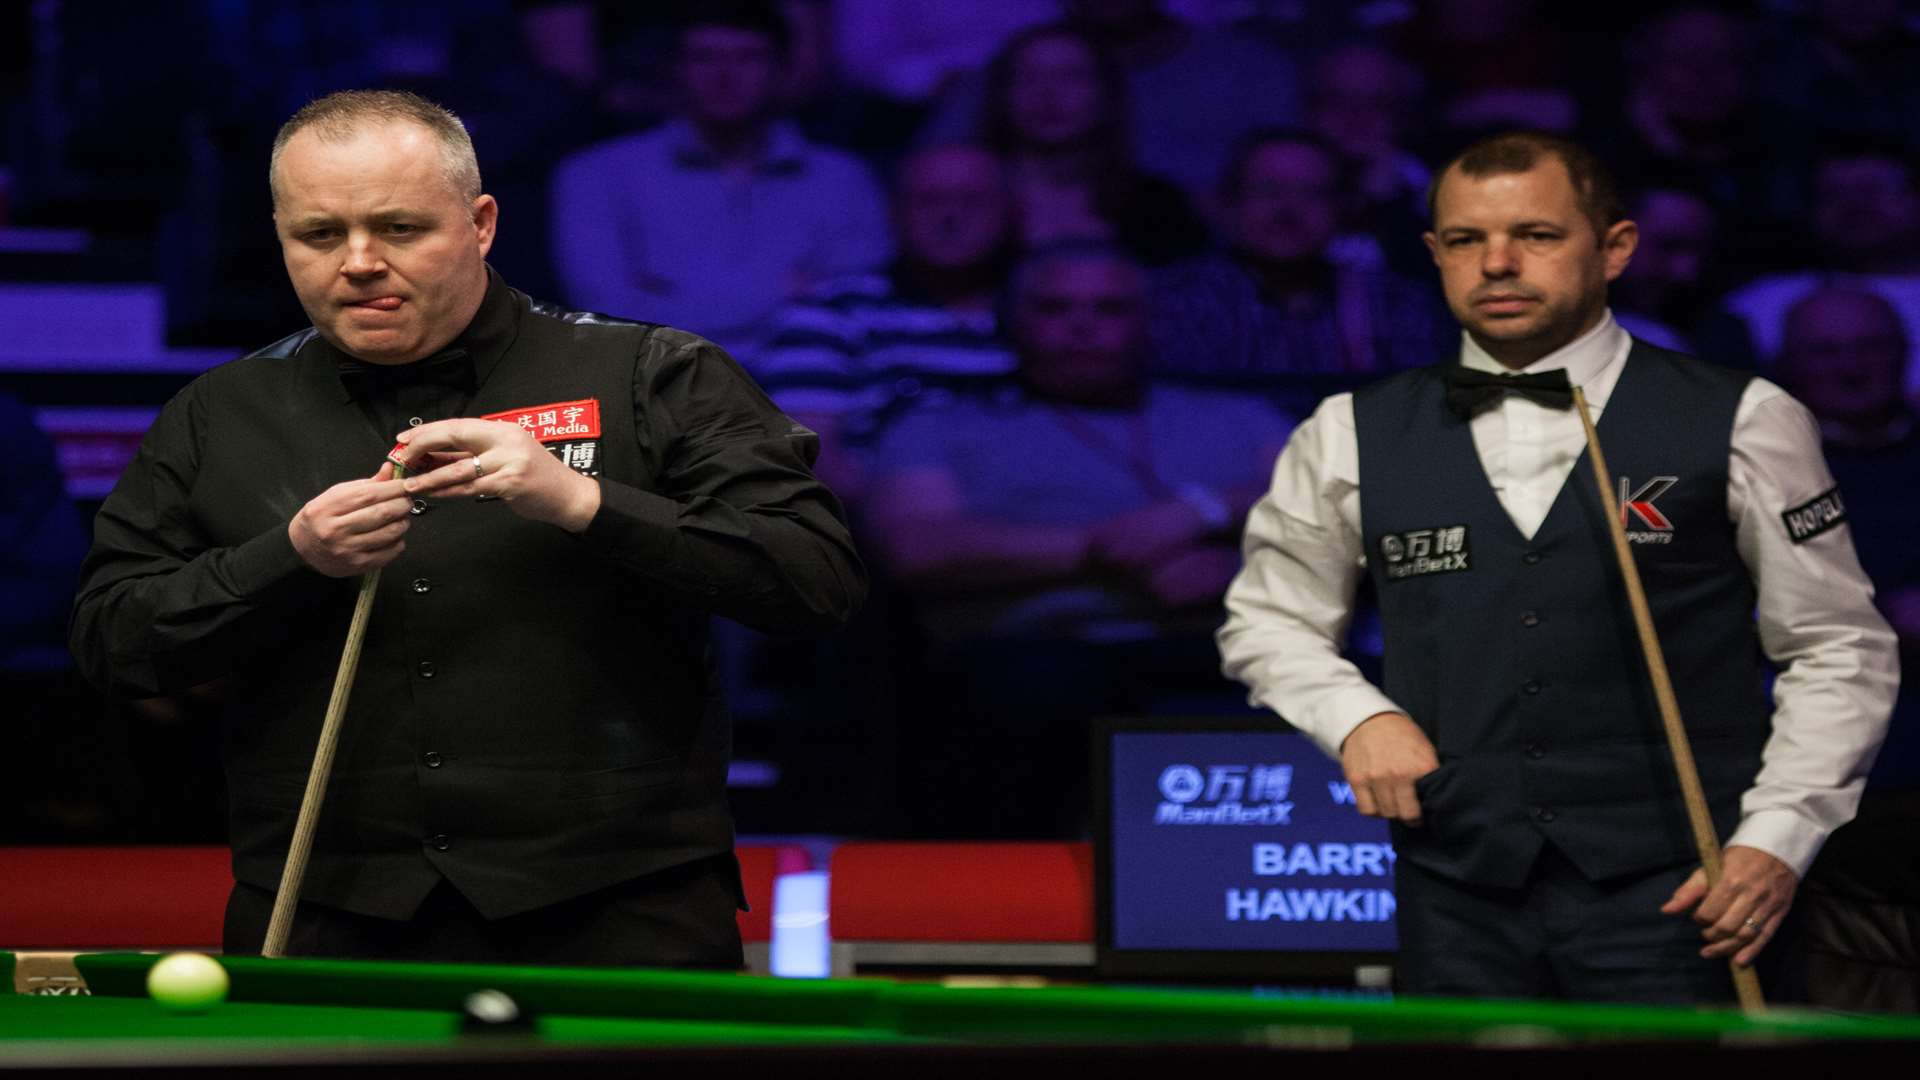 Barry Hawkins says his confidence is on the up despite losing the Welsh Open title to John Higgins Picture: World Snooker